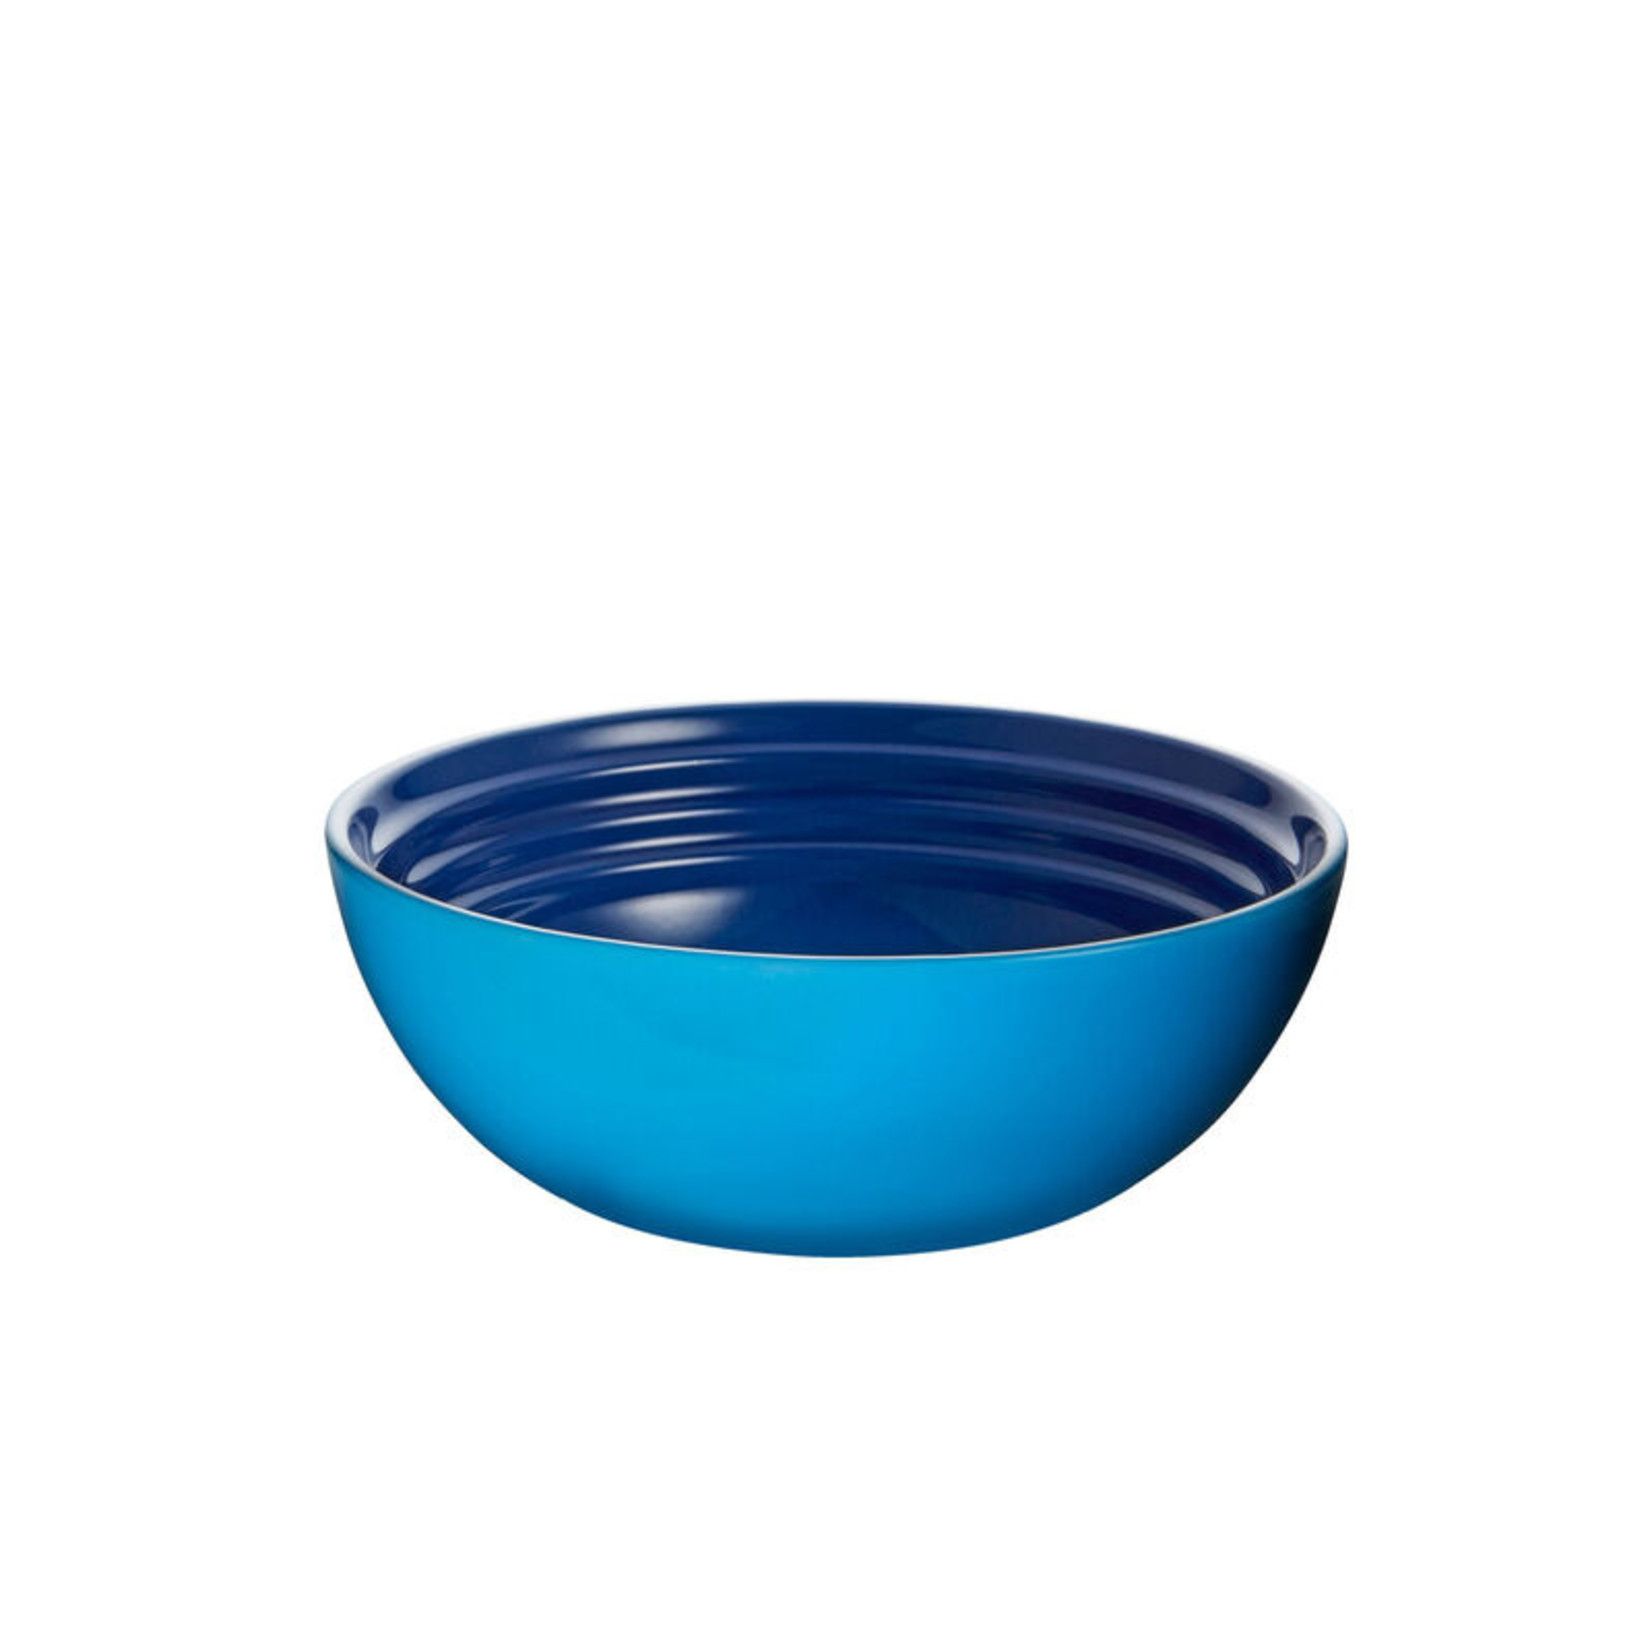 Le Creuset Classic Cereal Bowl